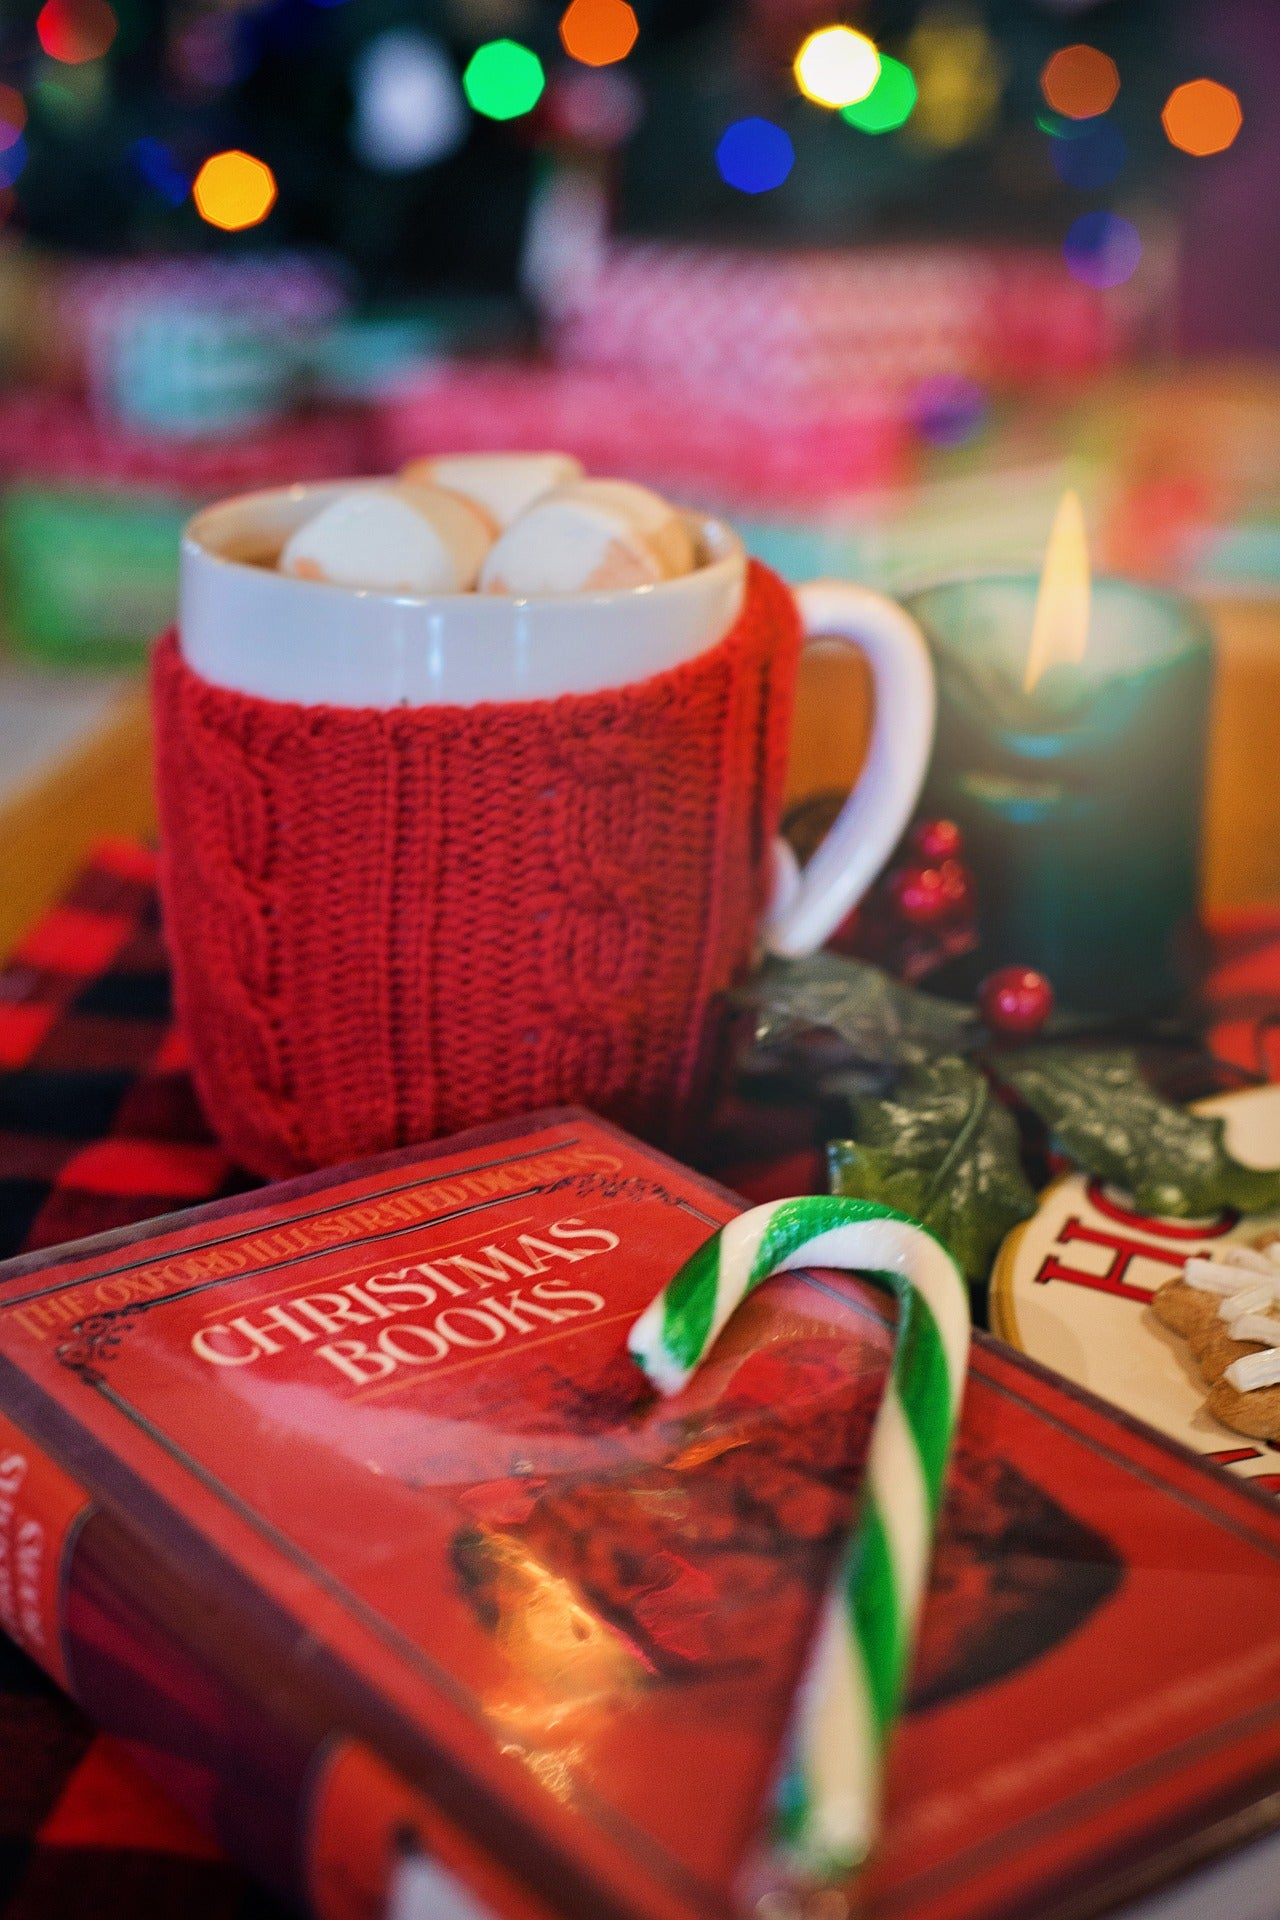 5 Festive Family Books for the Holidays